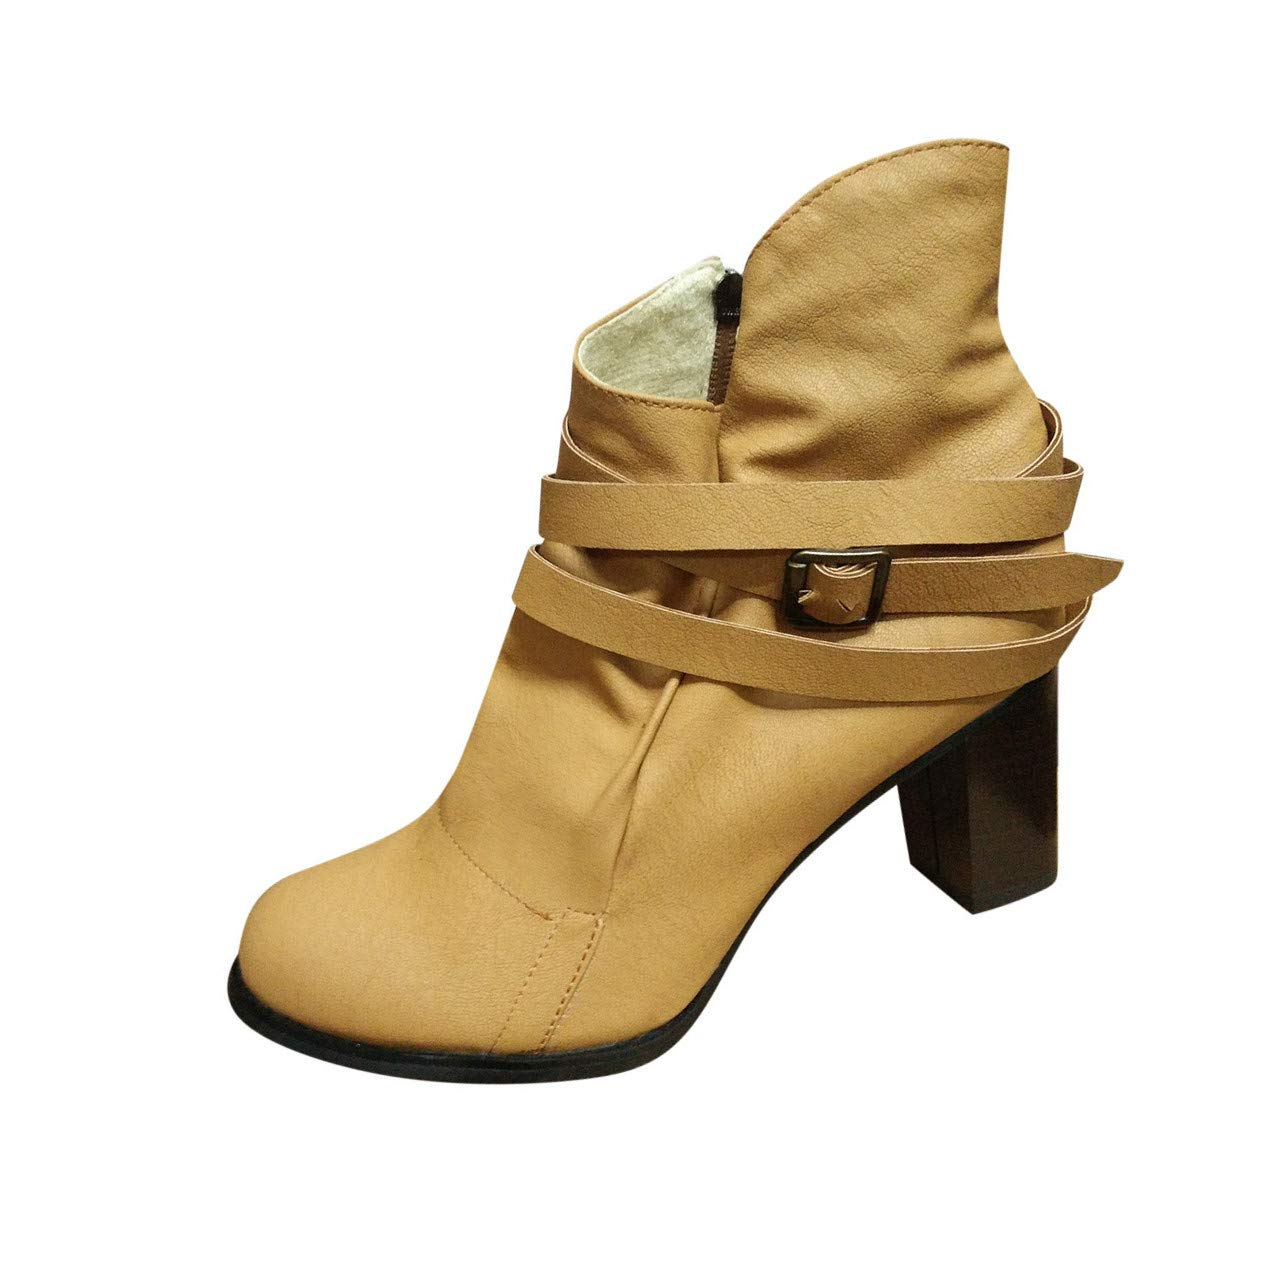 Appoi Women Shoes Womens Mid Chunky Heel Short Boot Fashion Comfortable Slip on Buckle Strap Booties (US:6, Yellow)